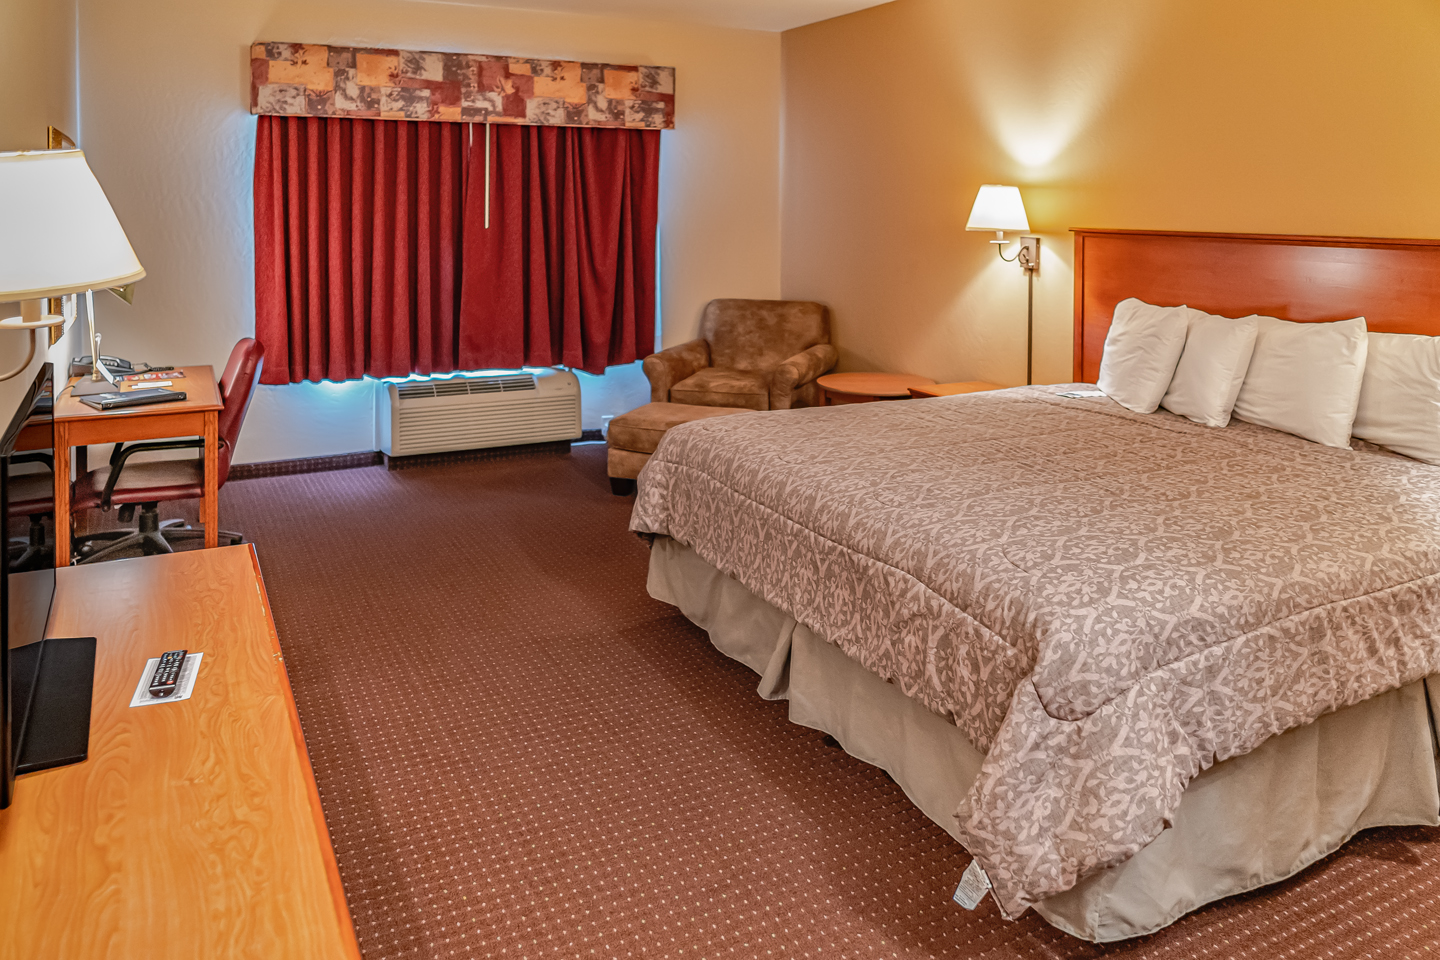 Mole Lake Casino Lodge In Crandon Wisconsin Offers The Best Hotel Deals On Single King Rooms